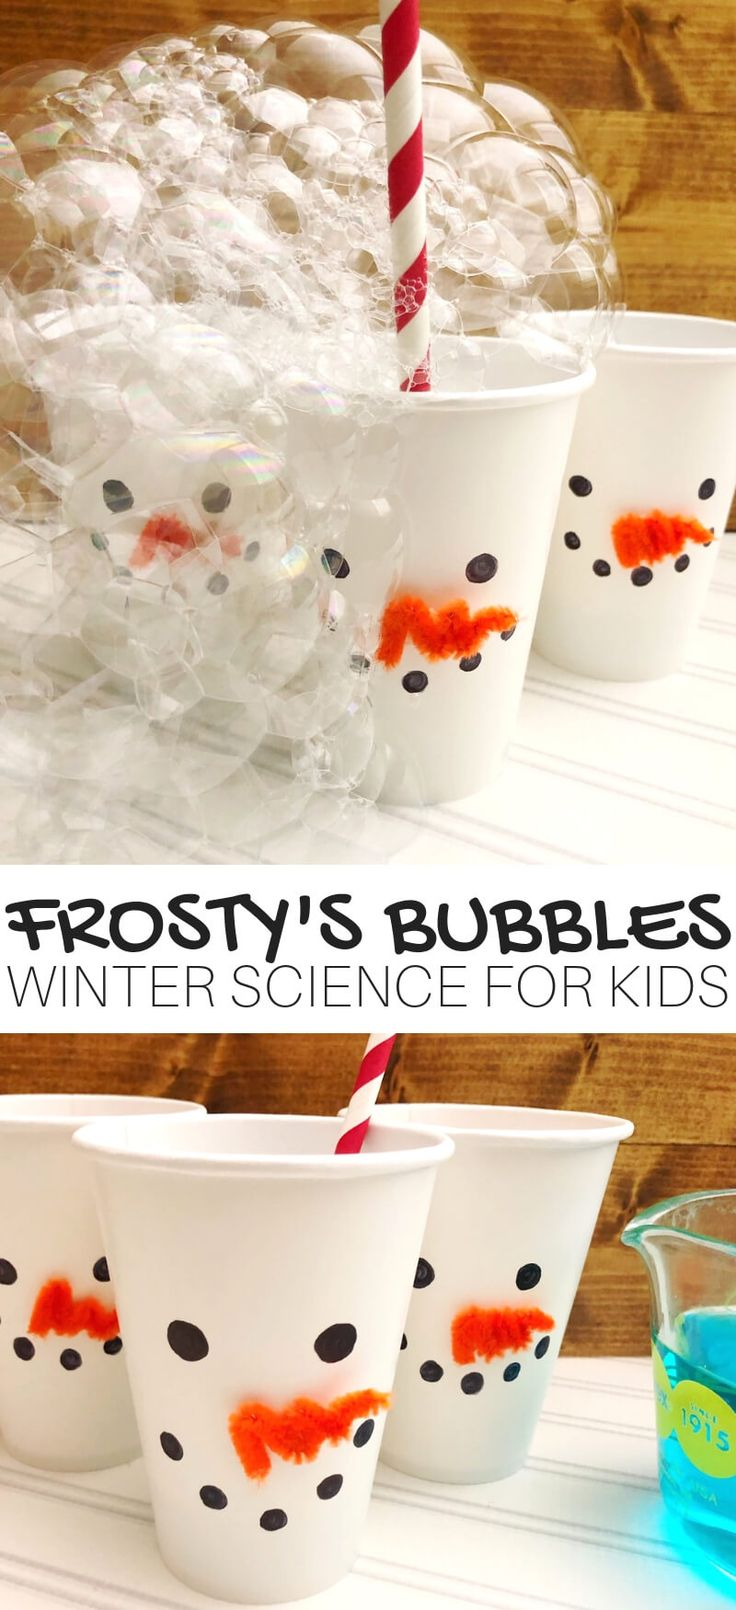 Winter Bubble Science and STEM Activity for Kids with Snowman Theme Julyssa Villagomez